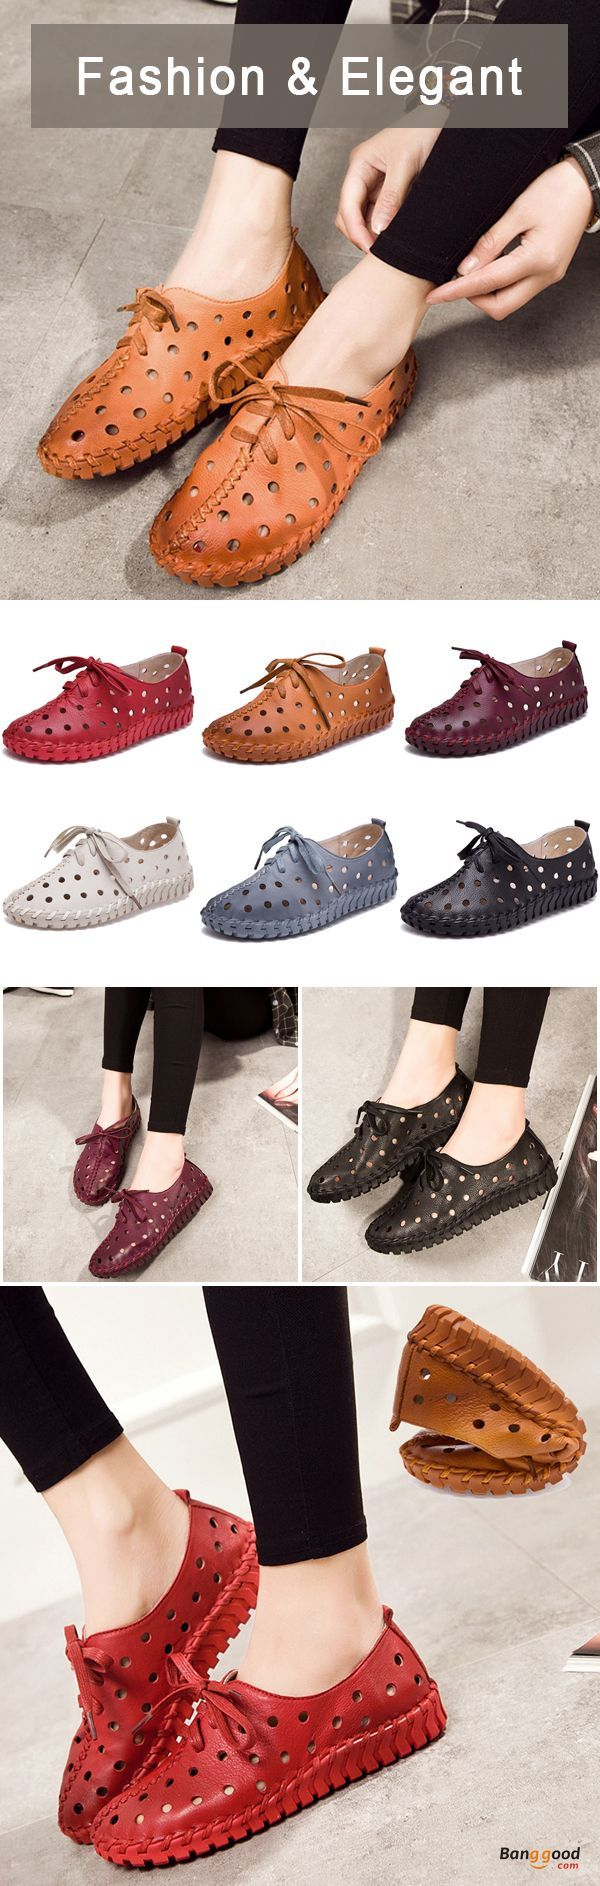 US$56.45 + Free shipping. Size: 5~9. Color: Black, Red, Wine Red, White, Gray, Brown. Fall in love with fashion and elegant style! SOCOFY Leather Hollow Out Breathable Stitching Lace Up Comfortable Shoes.